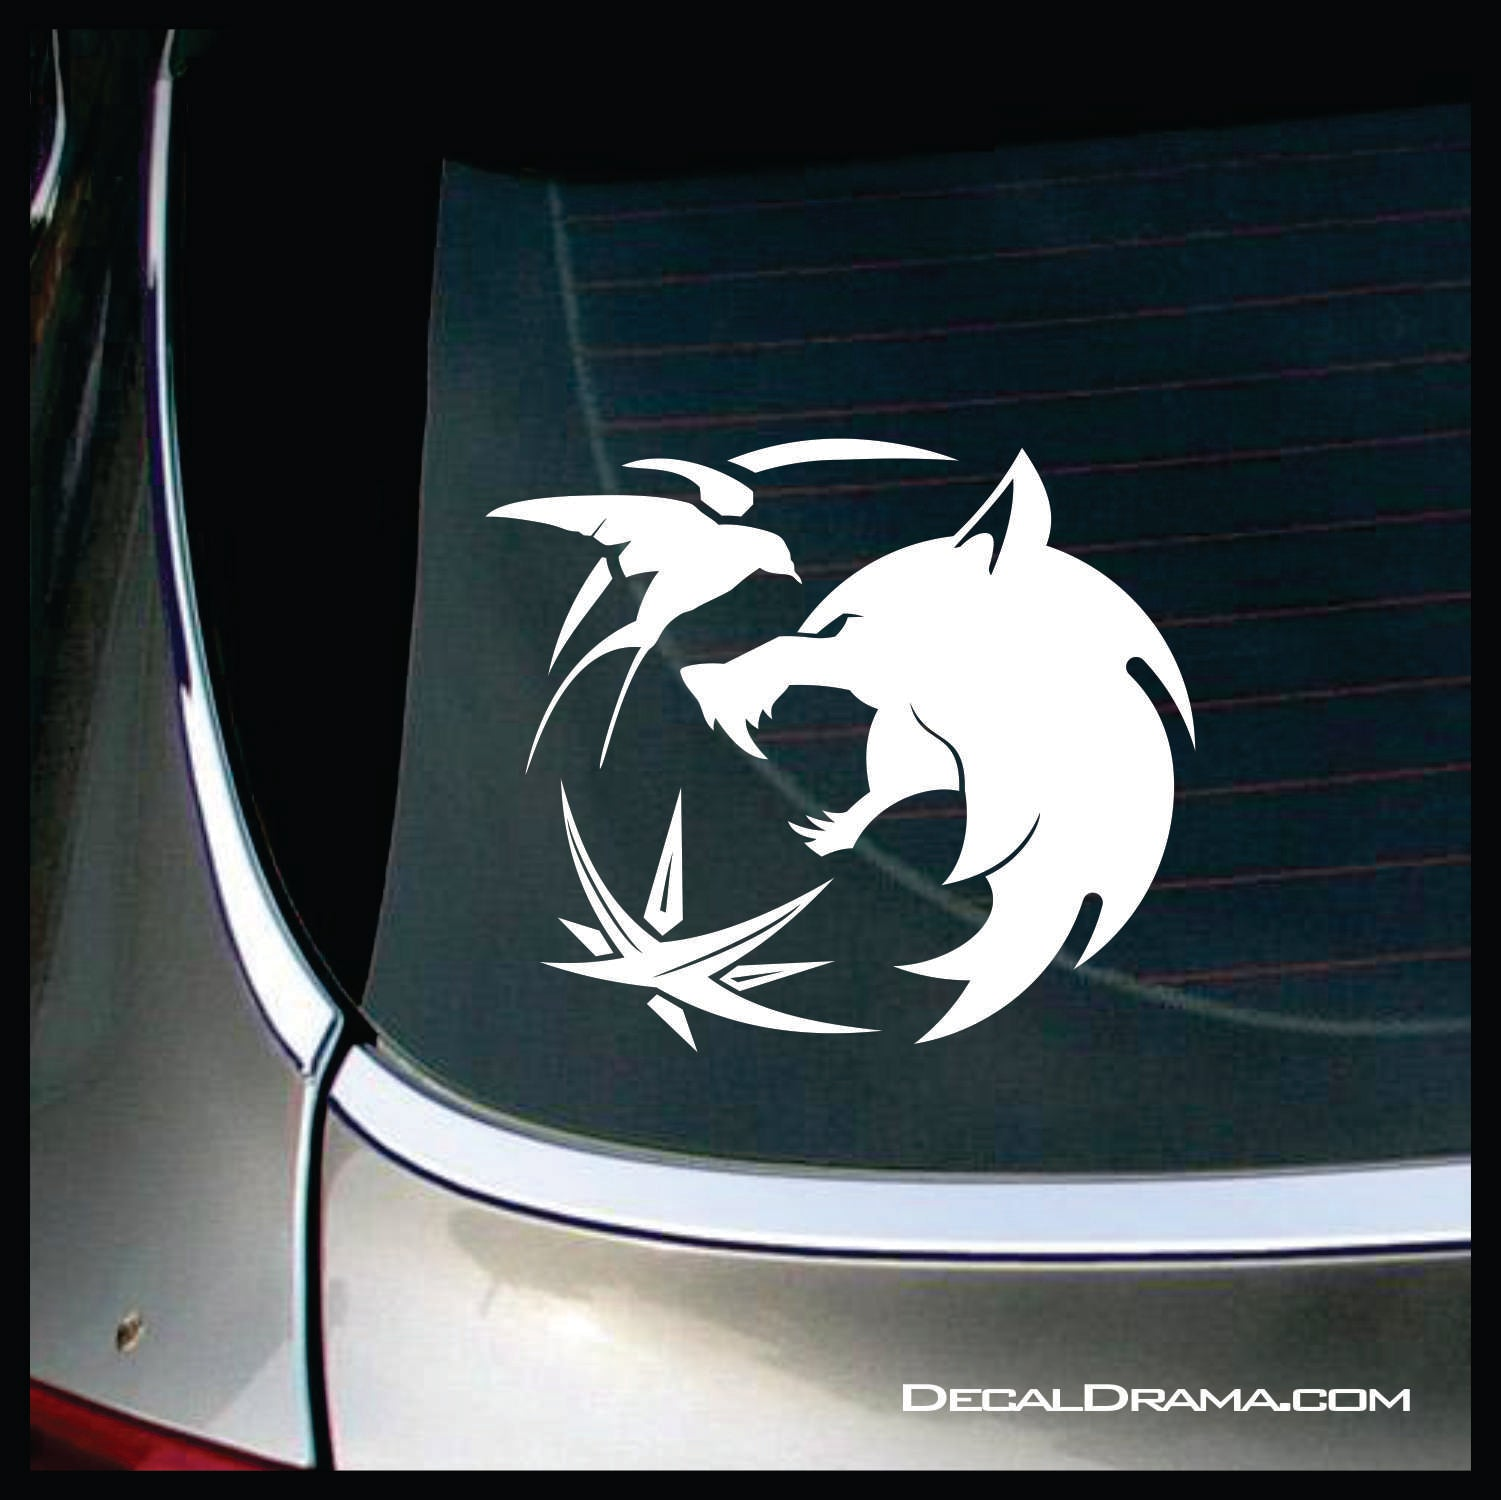 Witcher Wolf Compass Rose Sparrow Trinity, The Witcher Netflix-inspired Car/Laptop Decal